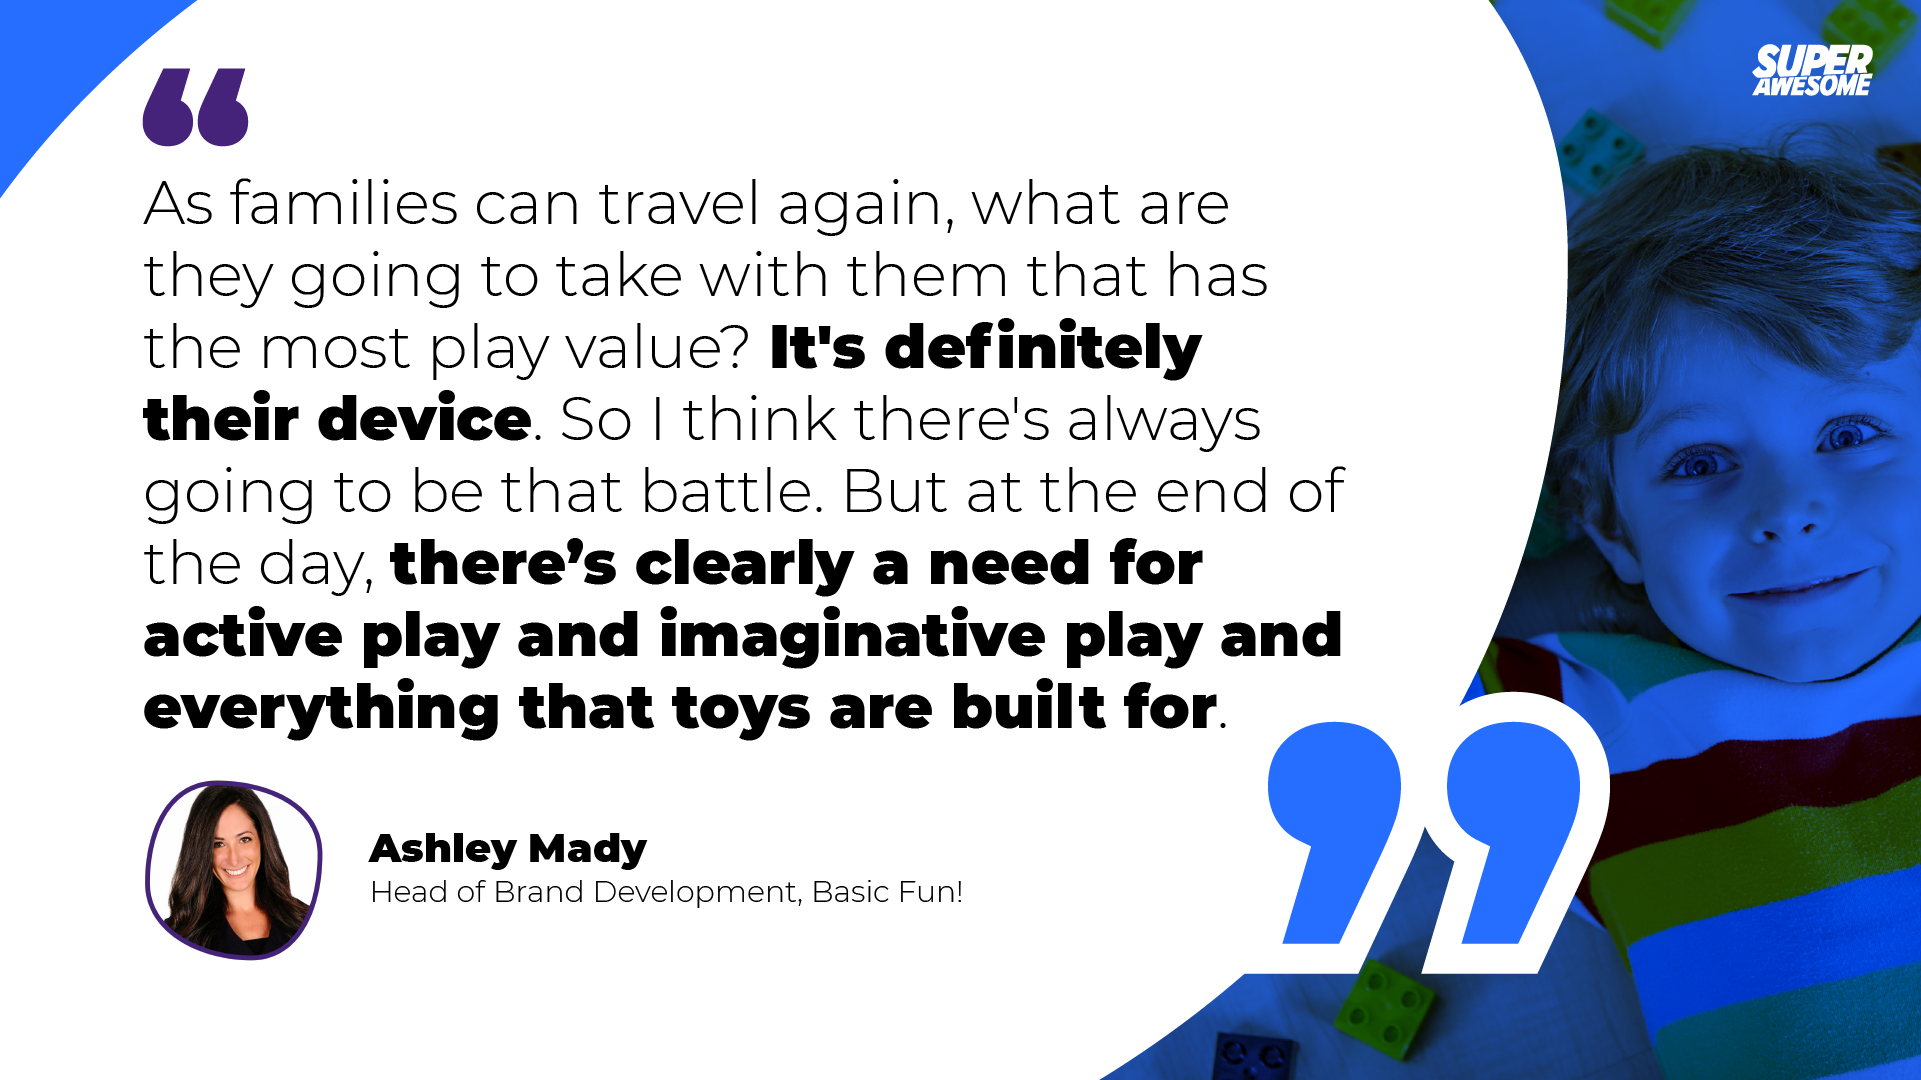 Ashley Mady of Basic Fun! shares her thoughts on where play is headed in a post-Covid world.